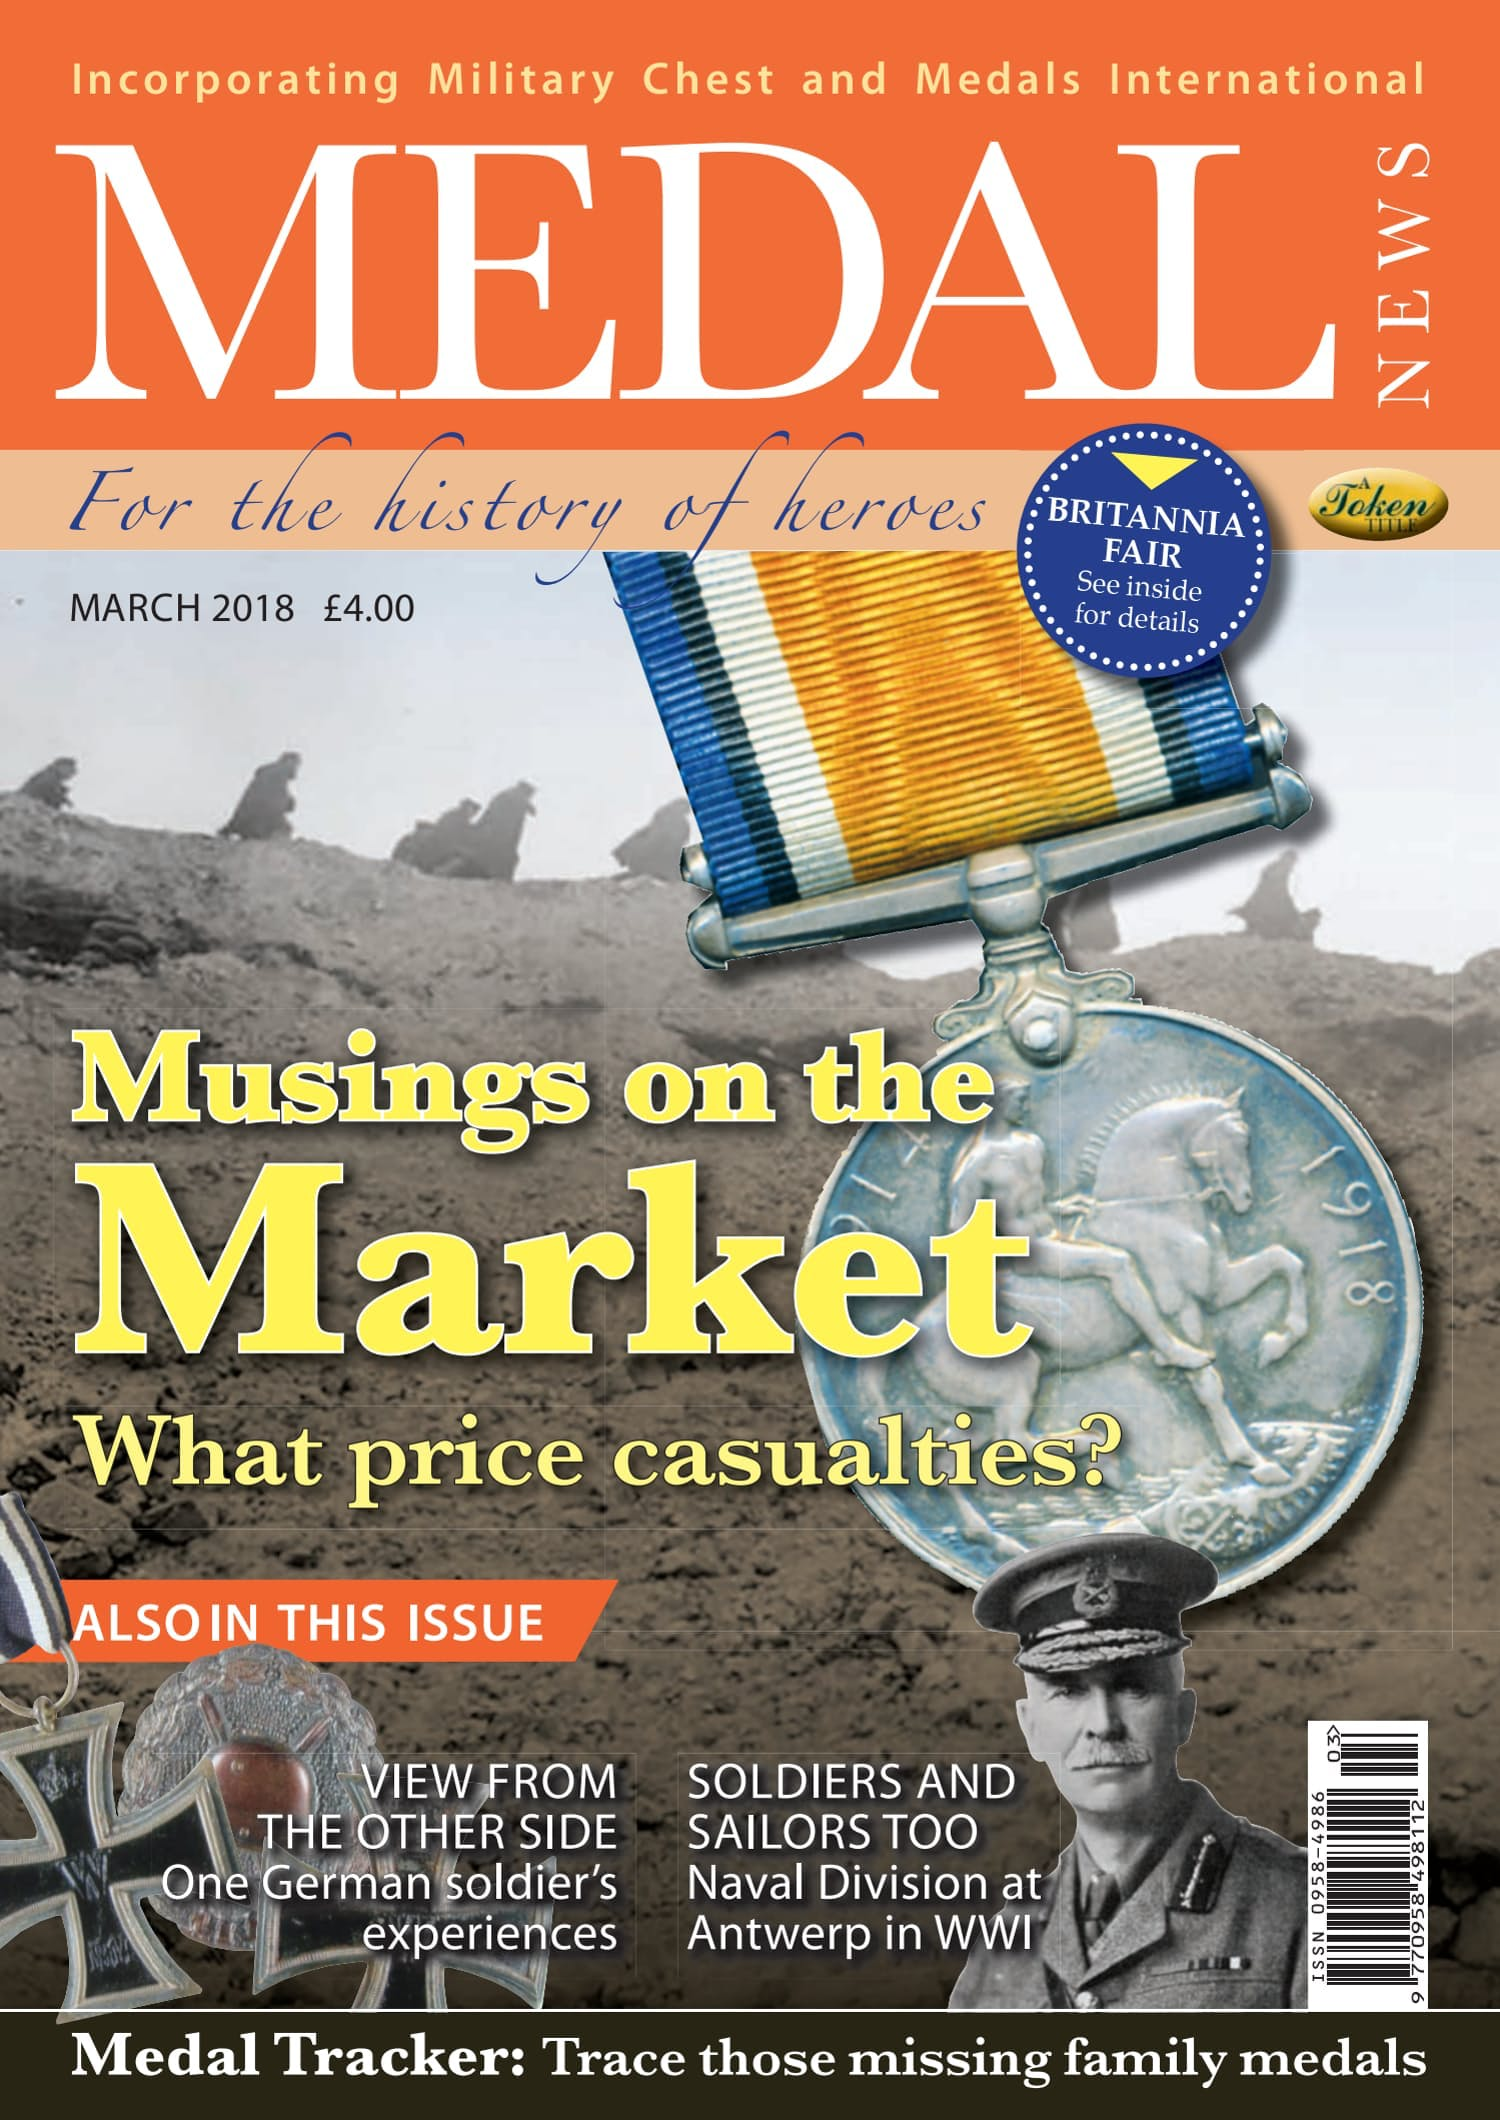 The front cover of Medal News, March 2018 - Volume 56, Number 3